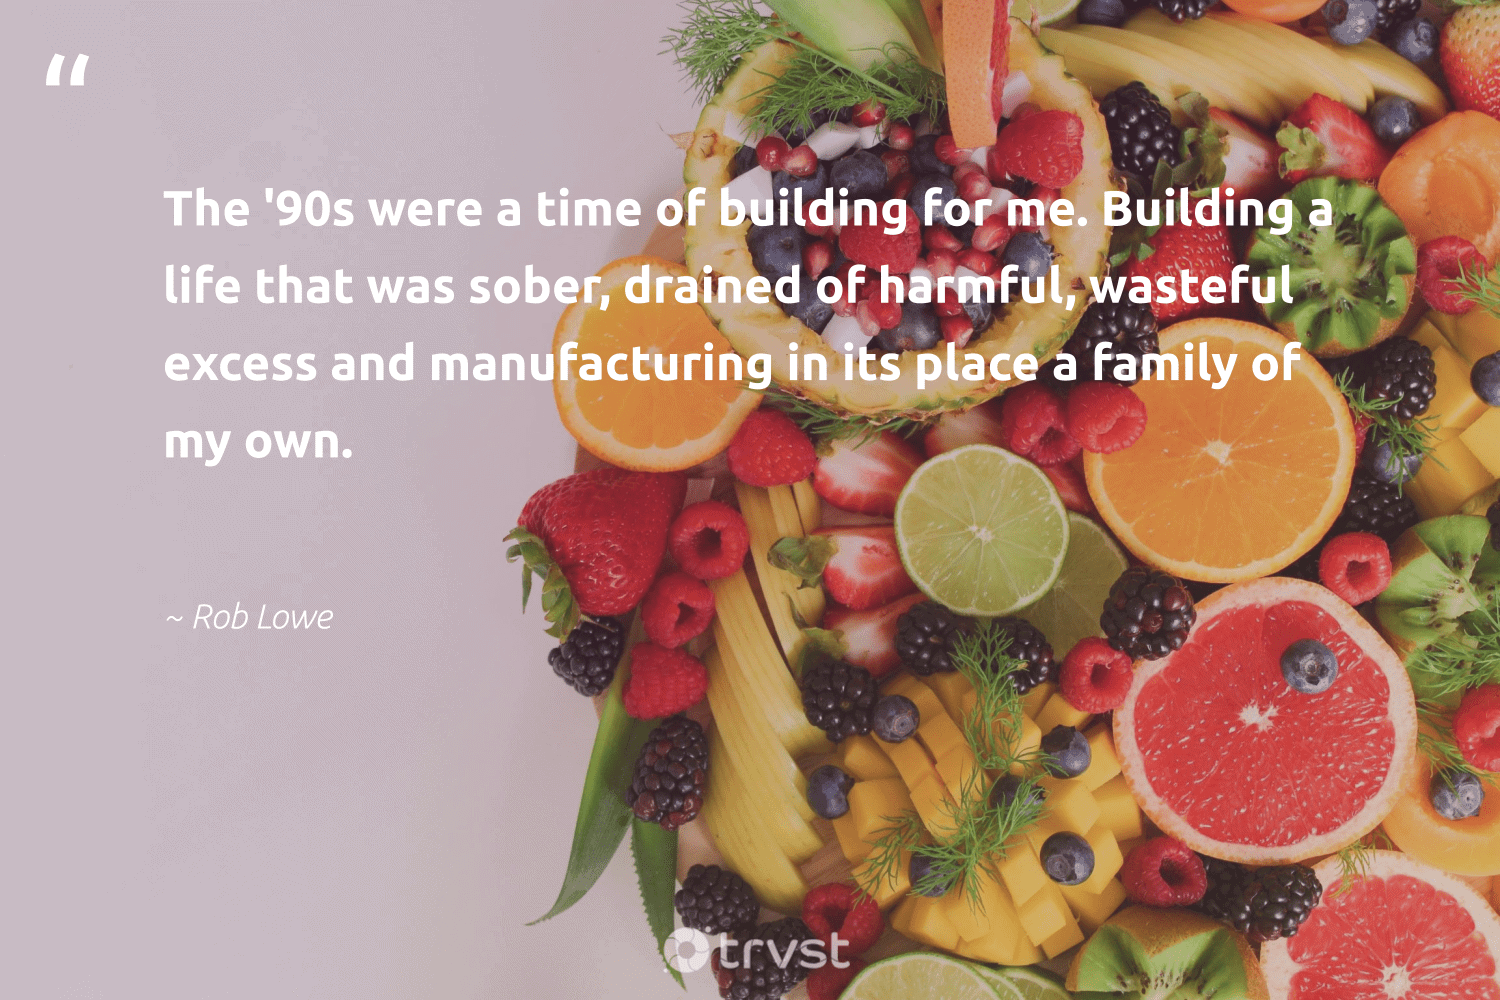 """""""The '90s were a time of building for me. Building a life that was sober, drained of harmful, wasteful excess and manufacturing in its place a family of my own.""""  - Rob Lowe #trvst #quotes #family #fashion #takeaction #sustainable #dosomething #green #planetearthfirst #sustainability #collectiveaction #gogreen"""